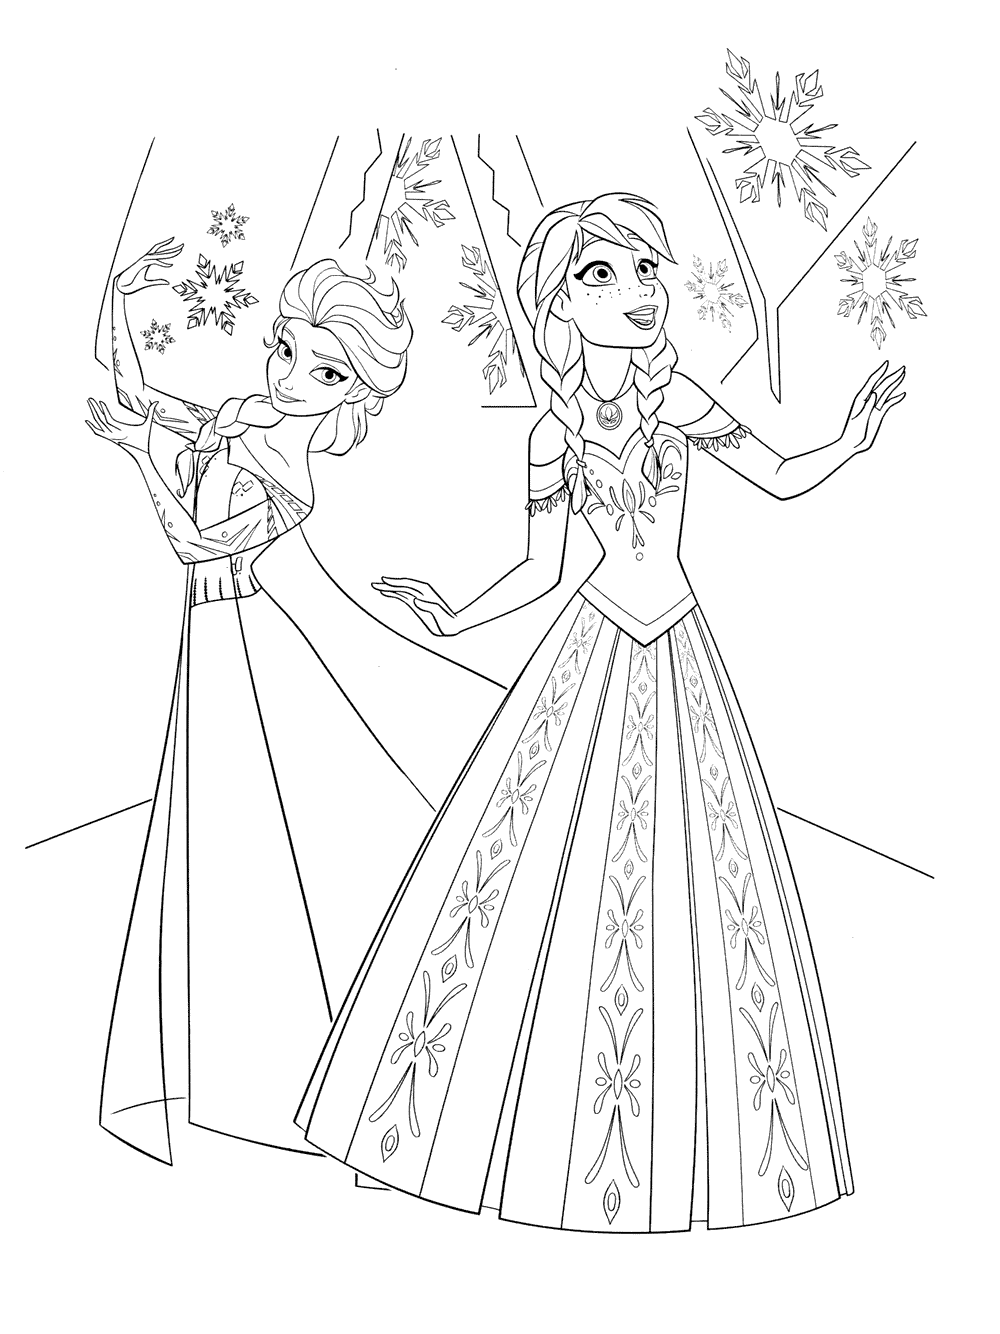 elsa and anna pictures to color elsa coloring pages free download on clipartmag and anna to pictures elsa color